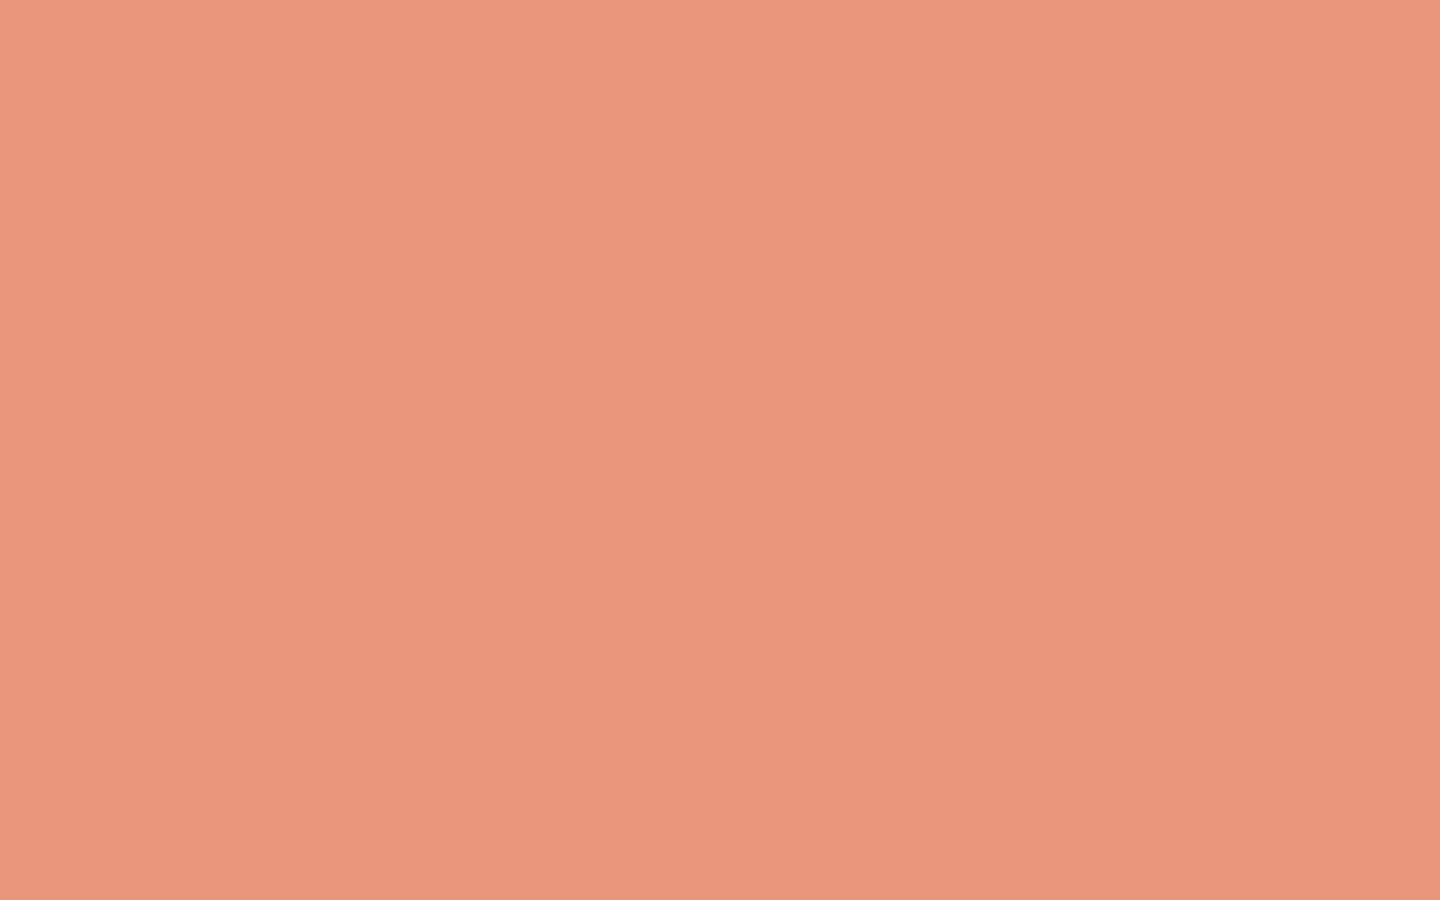 1440x900 Dark Salmon Solid Color Background